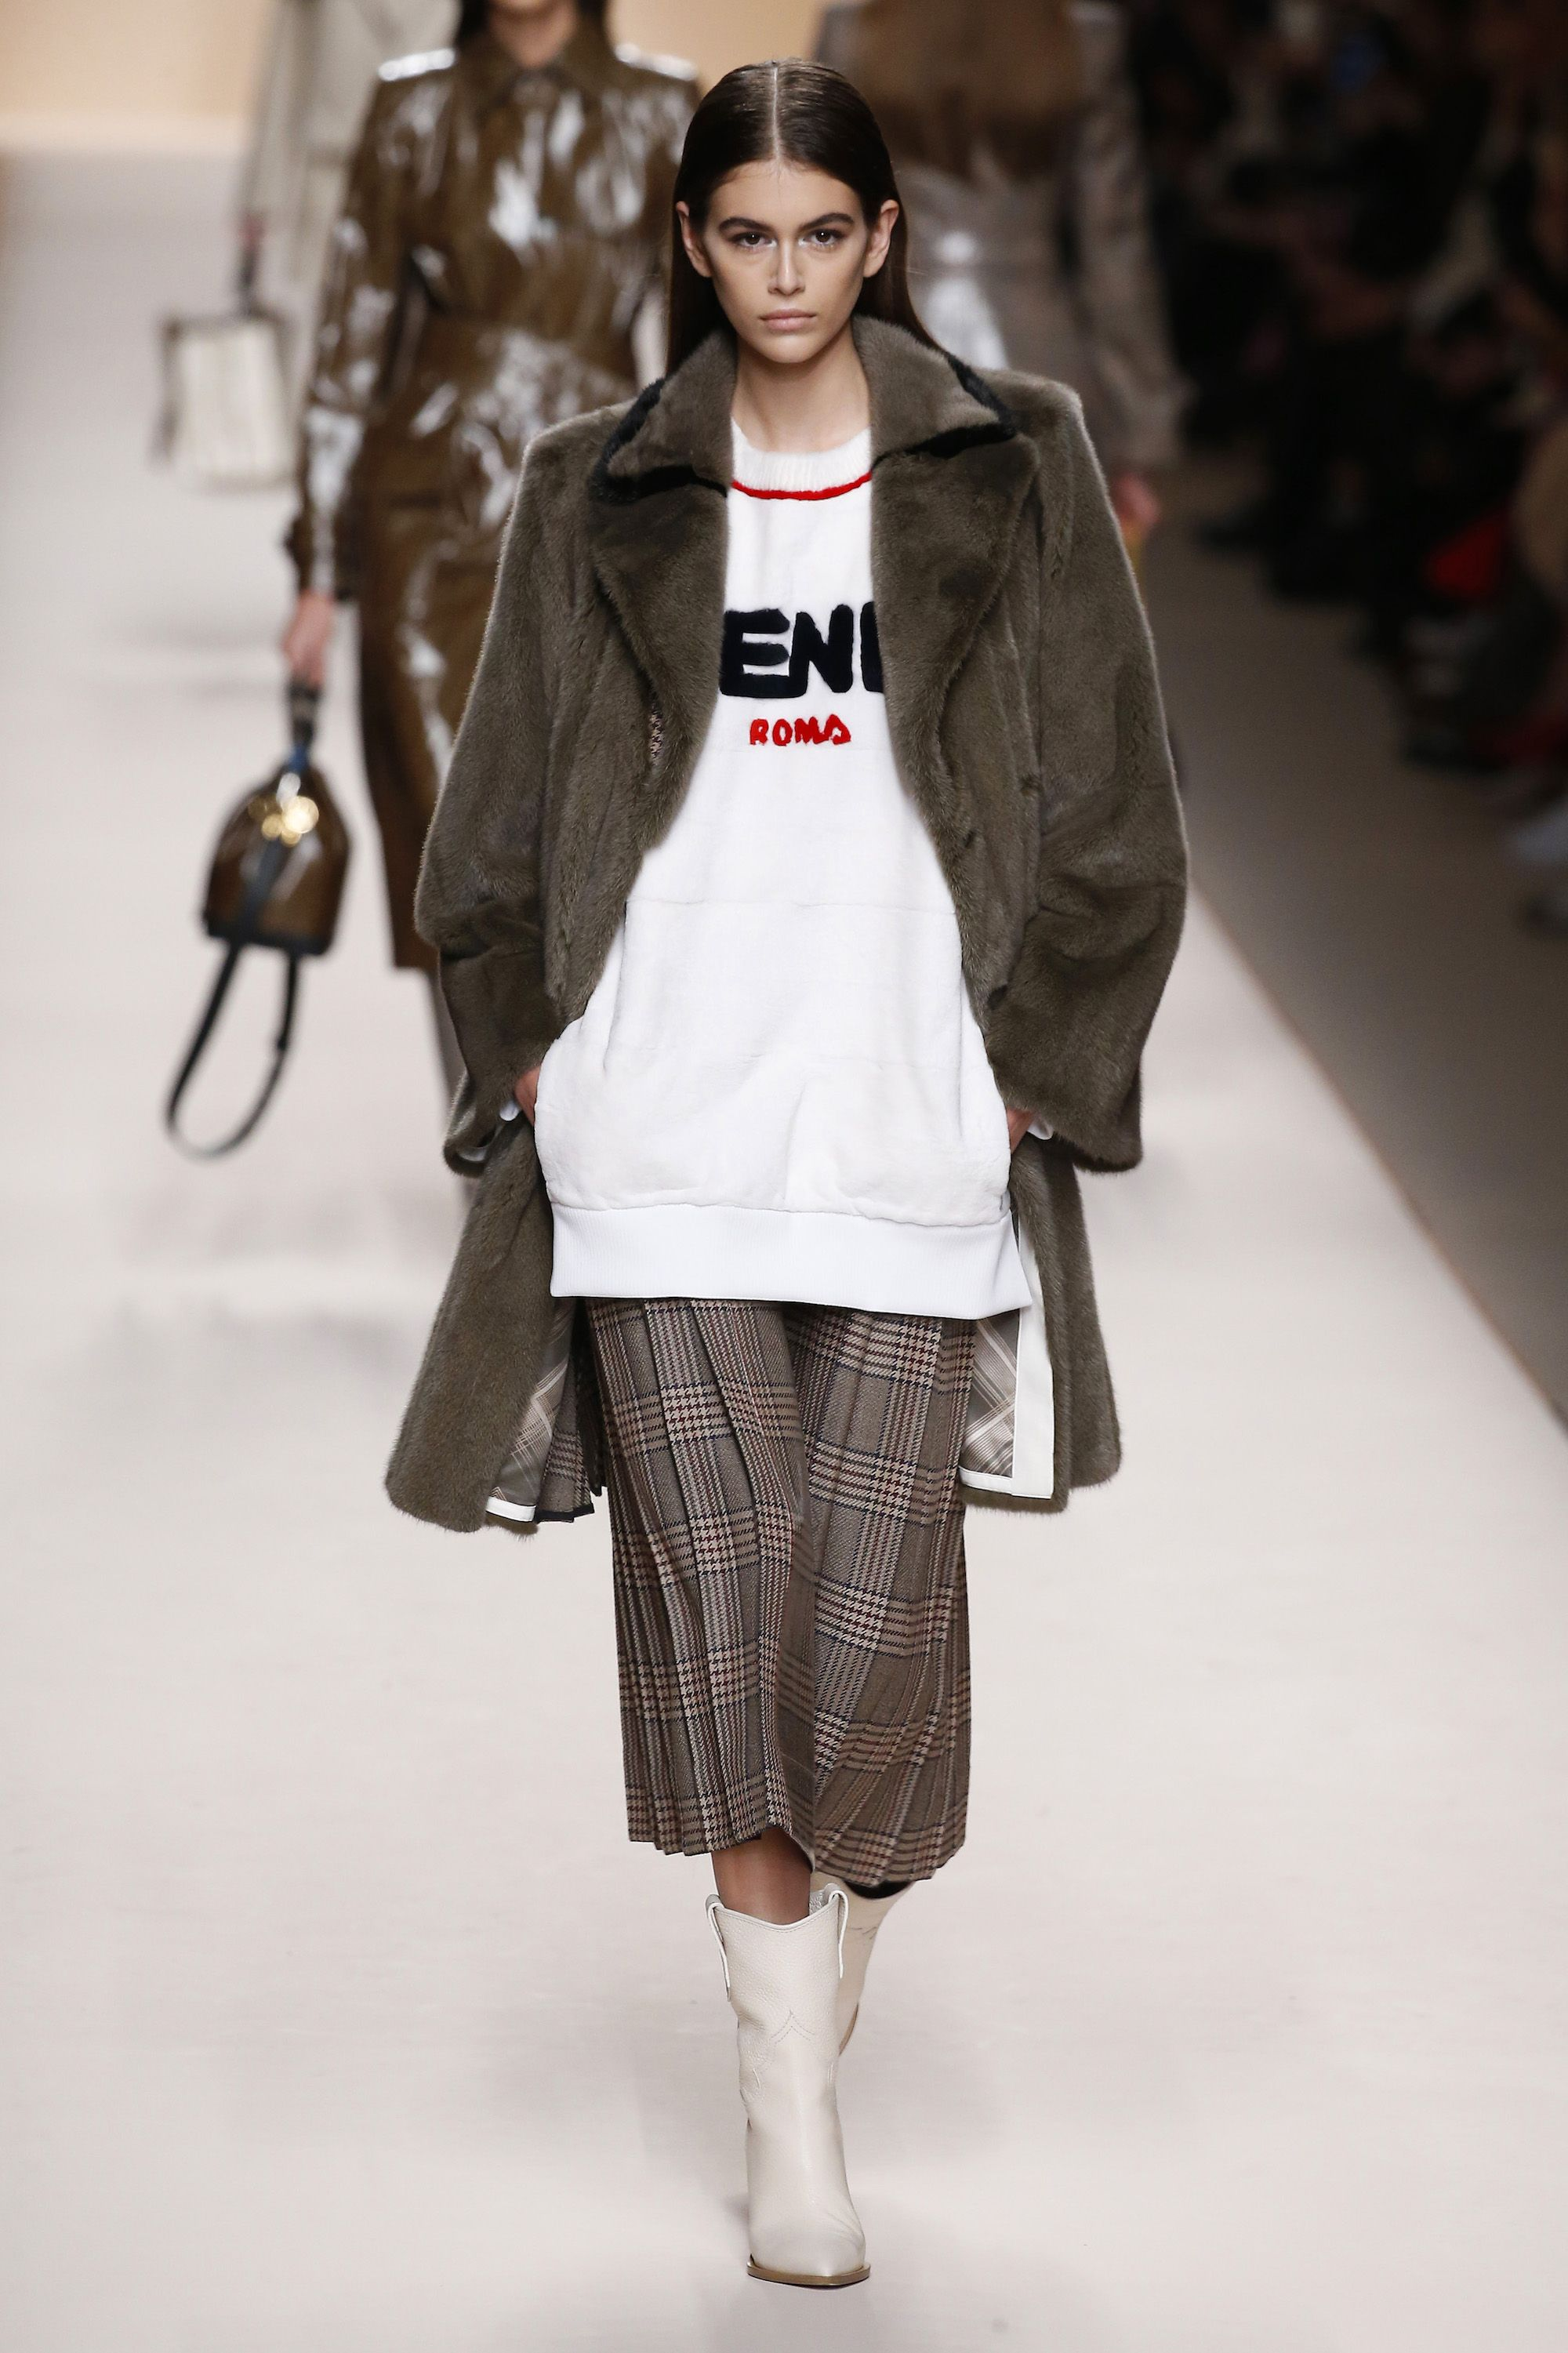 b5ae7bd393c9 See Every Look from Fendi Fall Winter 2018